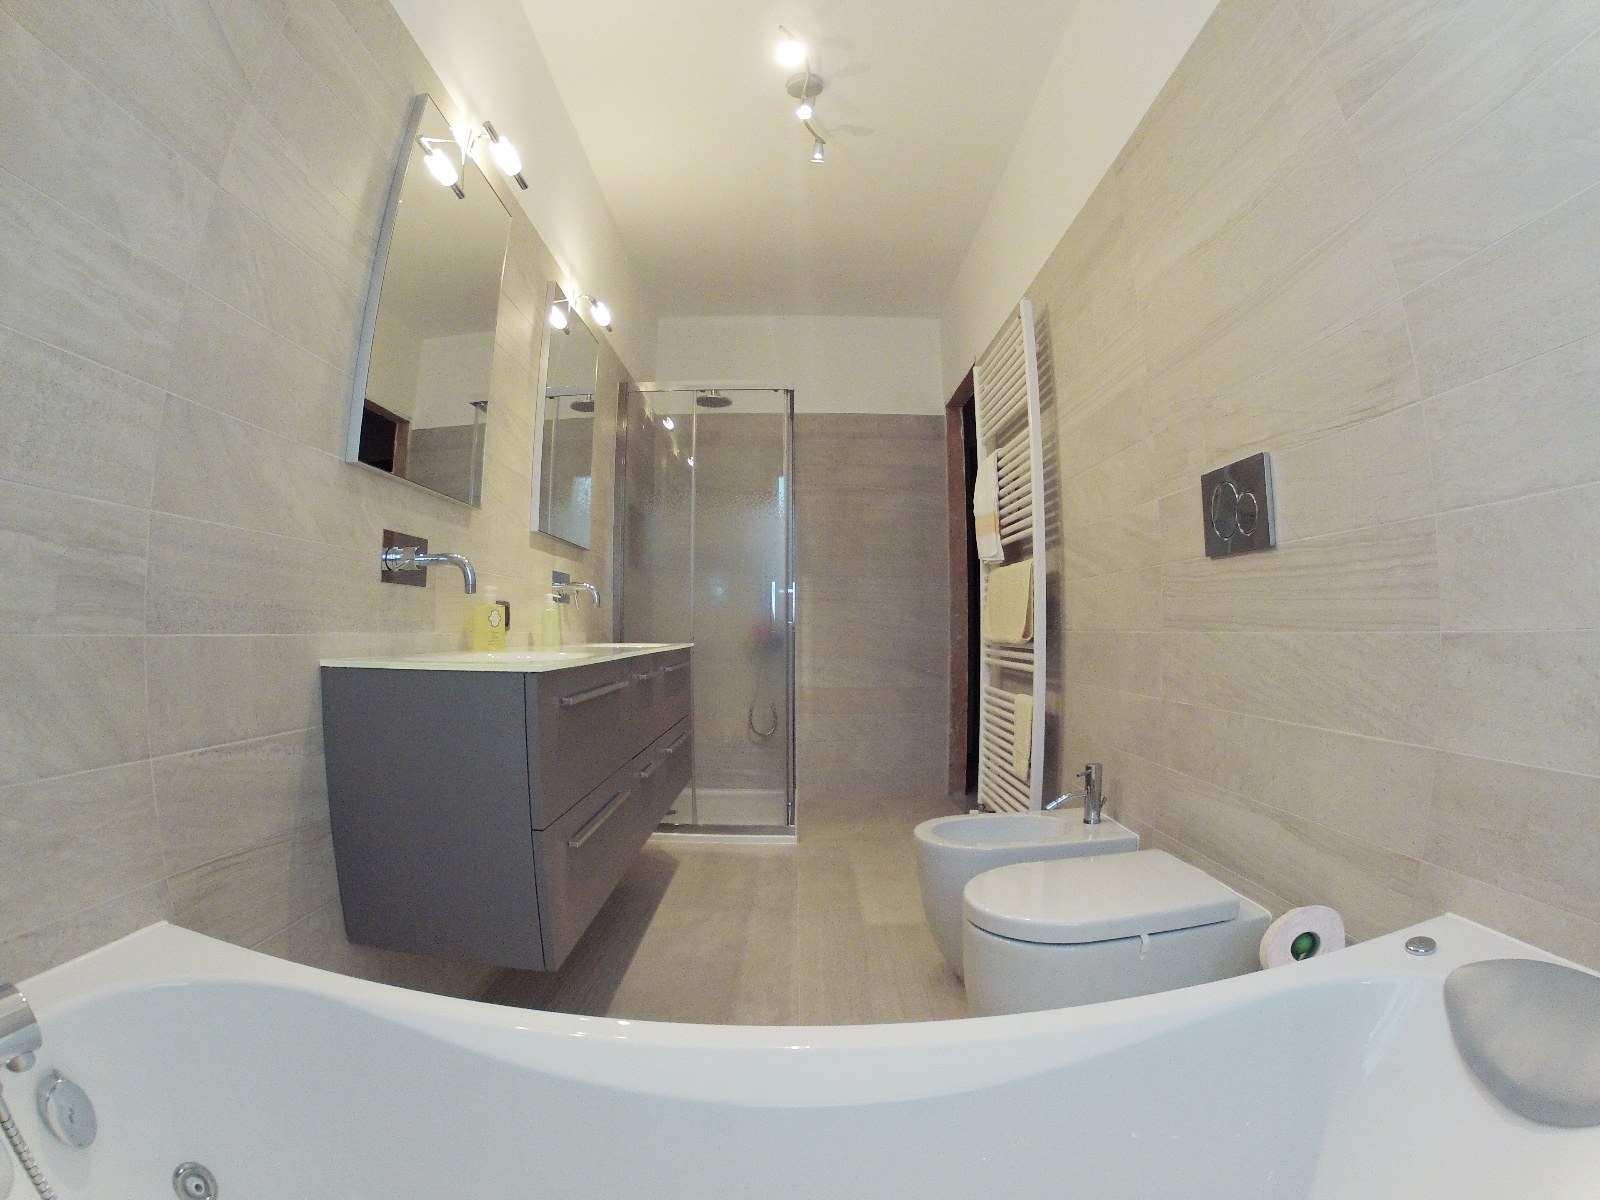 Works SintesiBagno | Bagno Double Slim